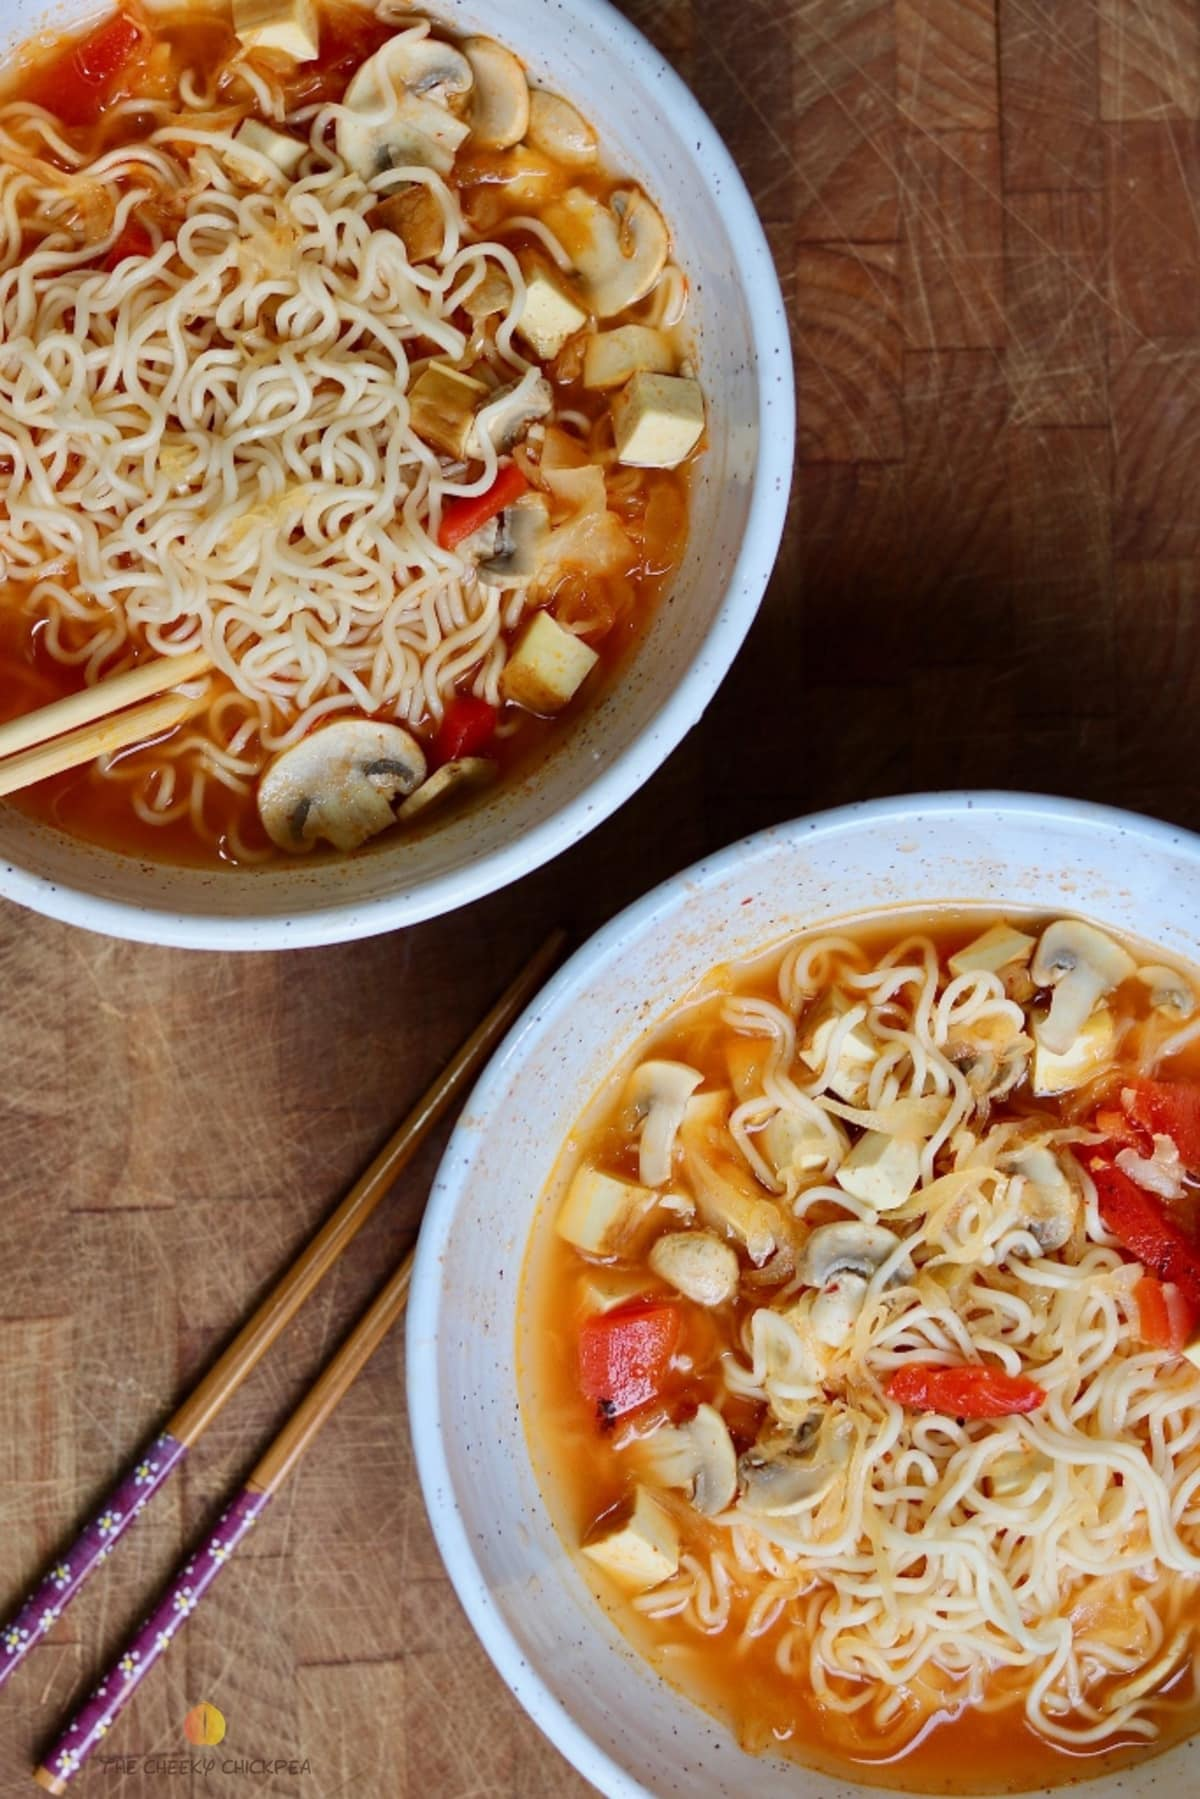 Ramen noodle soup in two white bowls on wooden cutting board